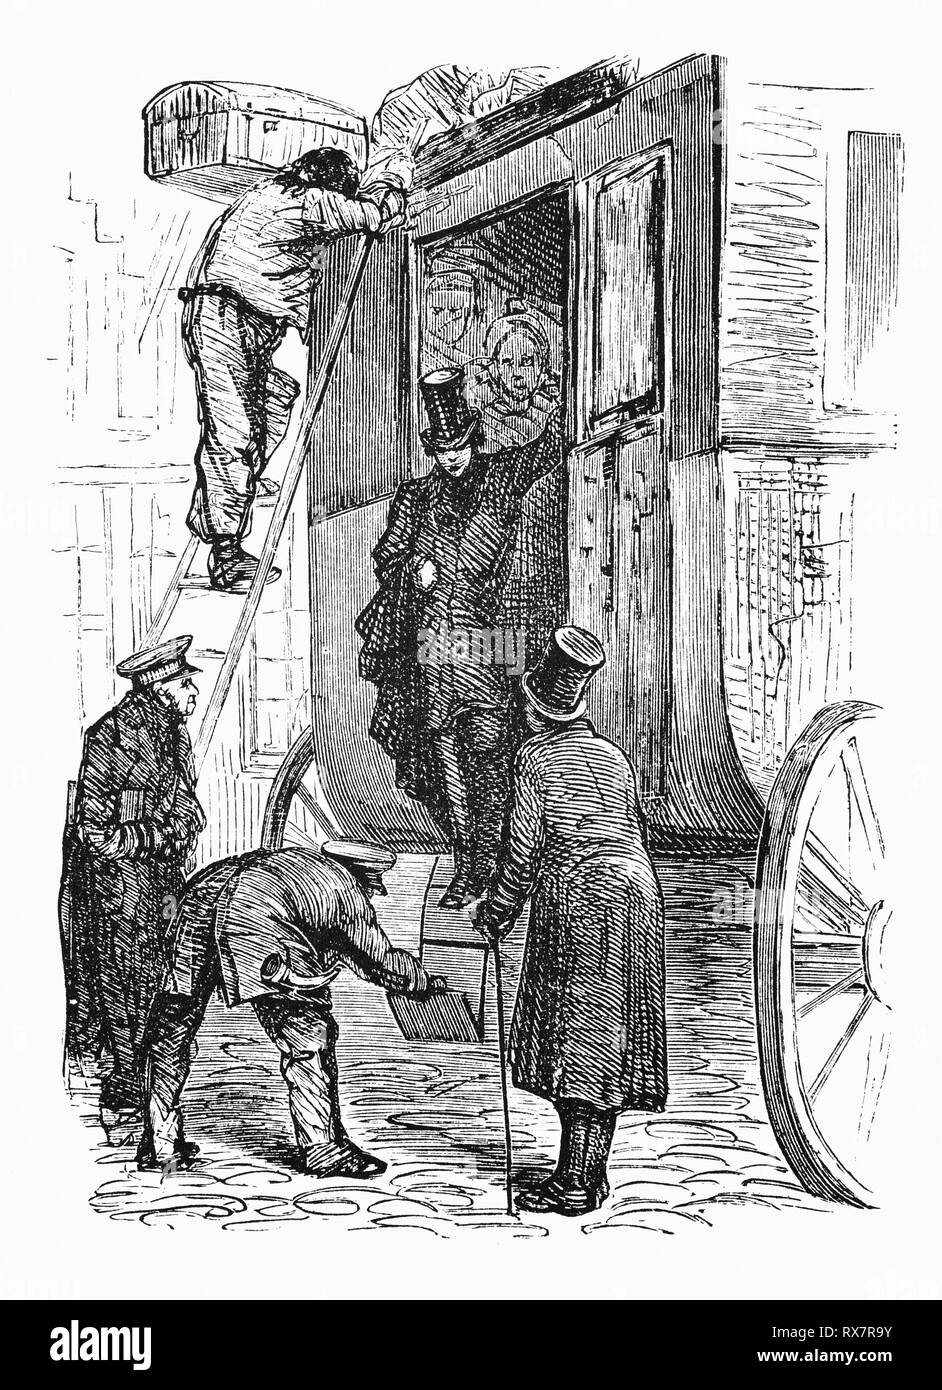 After travelling by stage coach, Hildebrand arrives to visit uncle and aunt Stastok in the Netherlands. In his short time as a guest of the family, he views and experiences their daily life. From the 19th Century Camera Obscura, a collection of Dutch humorous-realistic essays, stories and sketches in which Hildebrand, the author, takes an ironic look at the behavior of the 'well-to-do', finding  them bourgeois and without a good word for them. - Stock Image